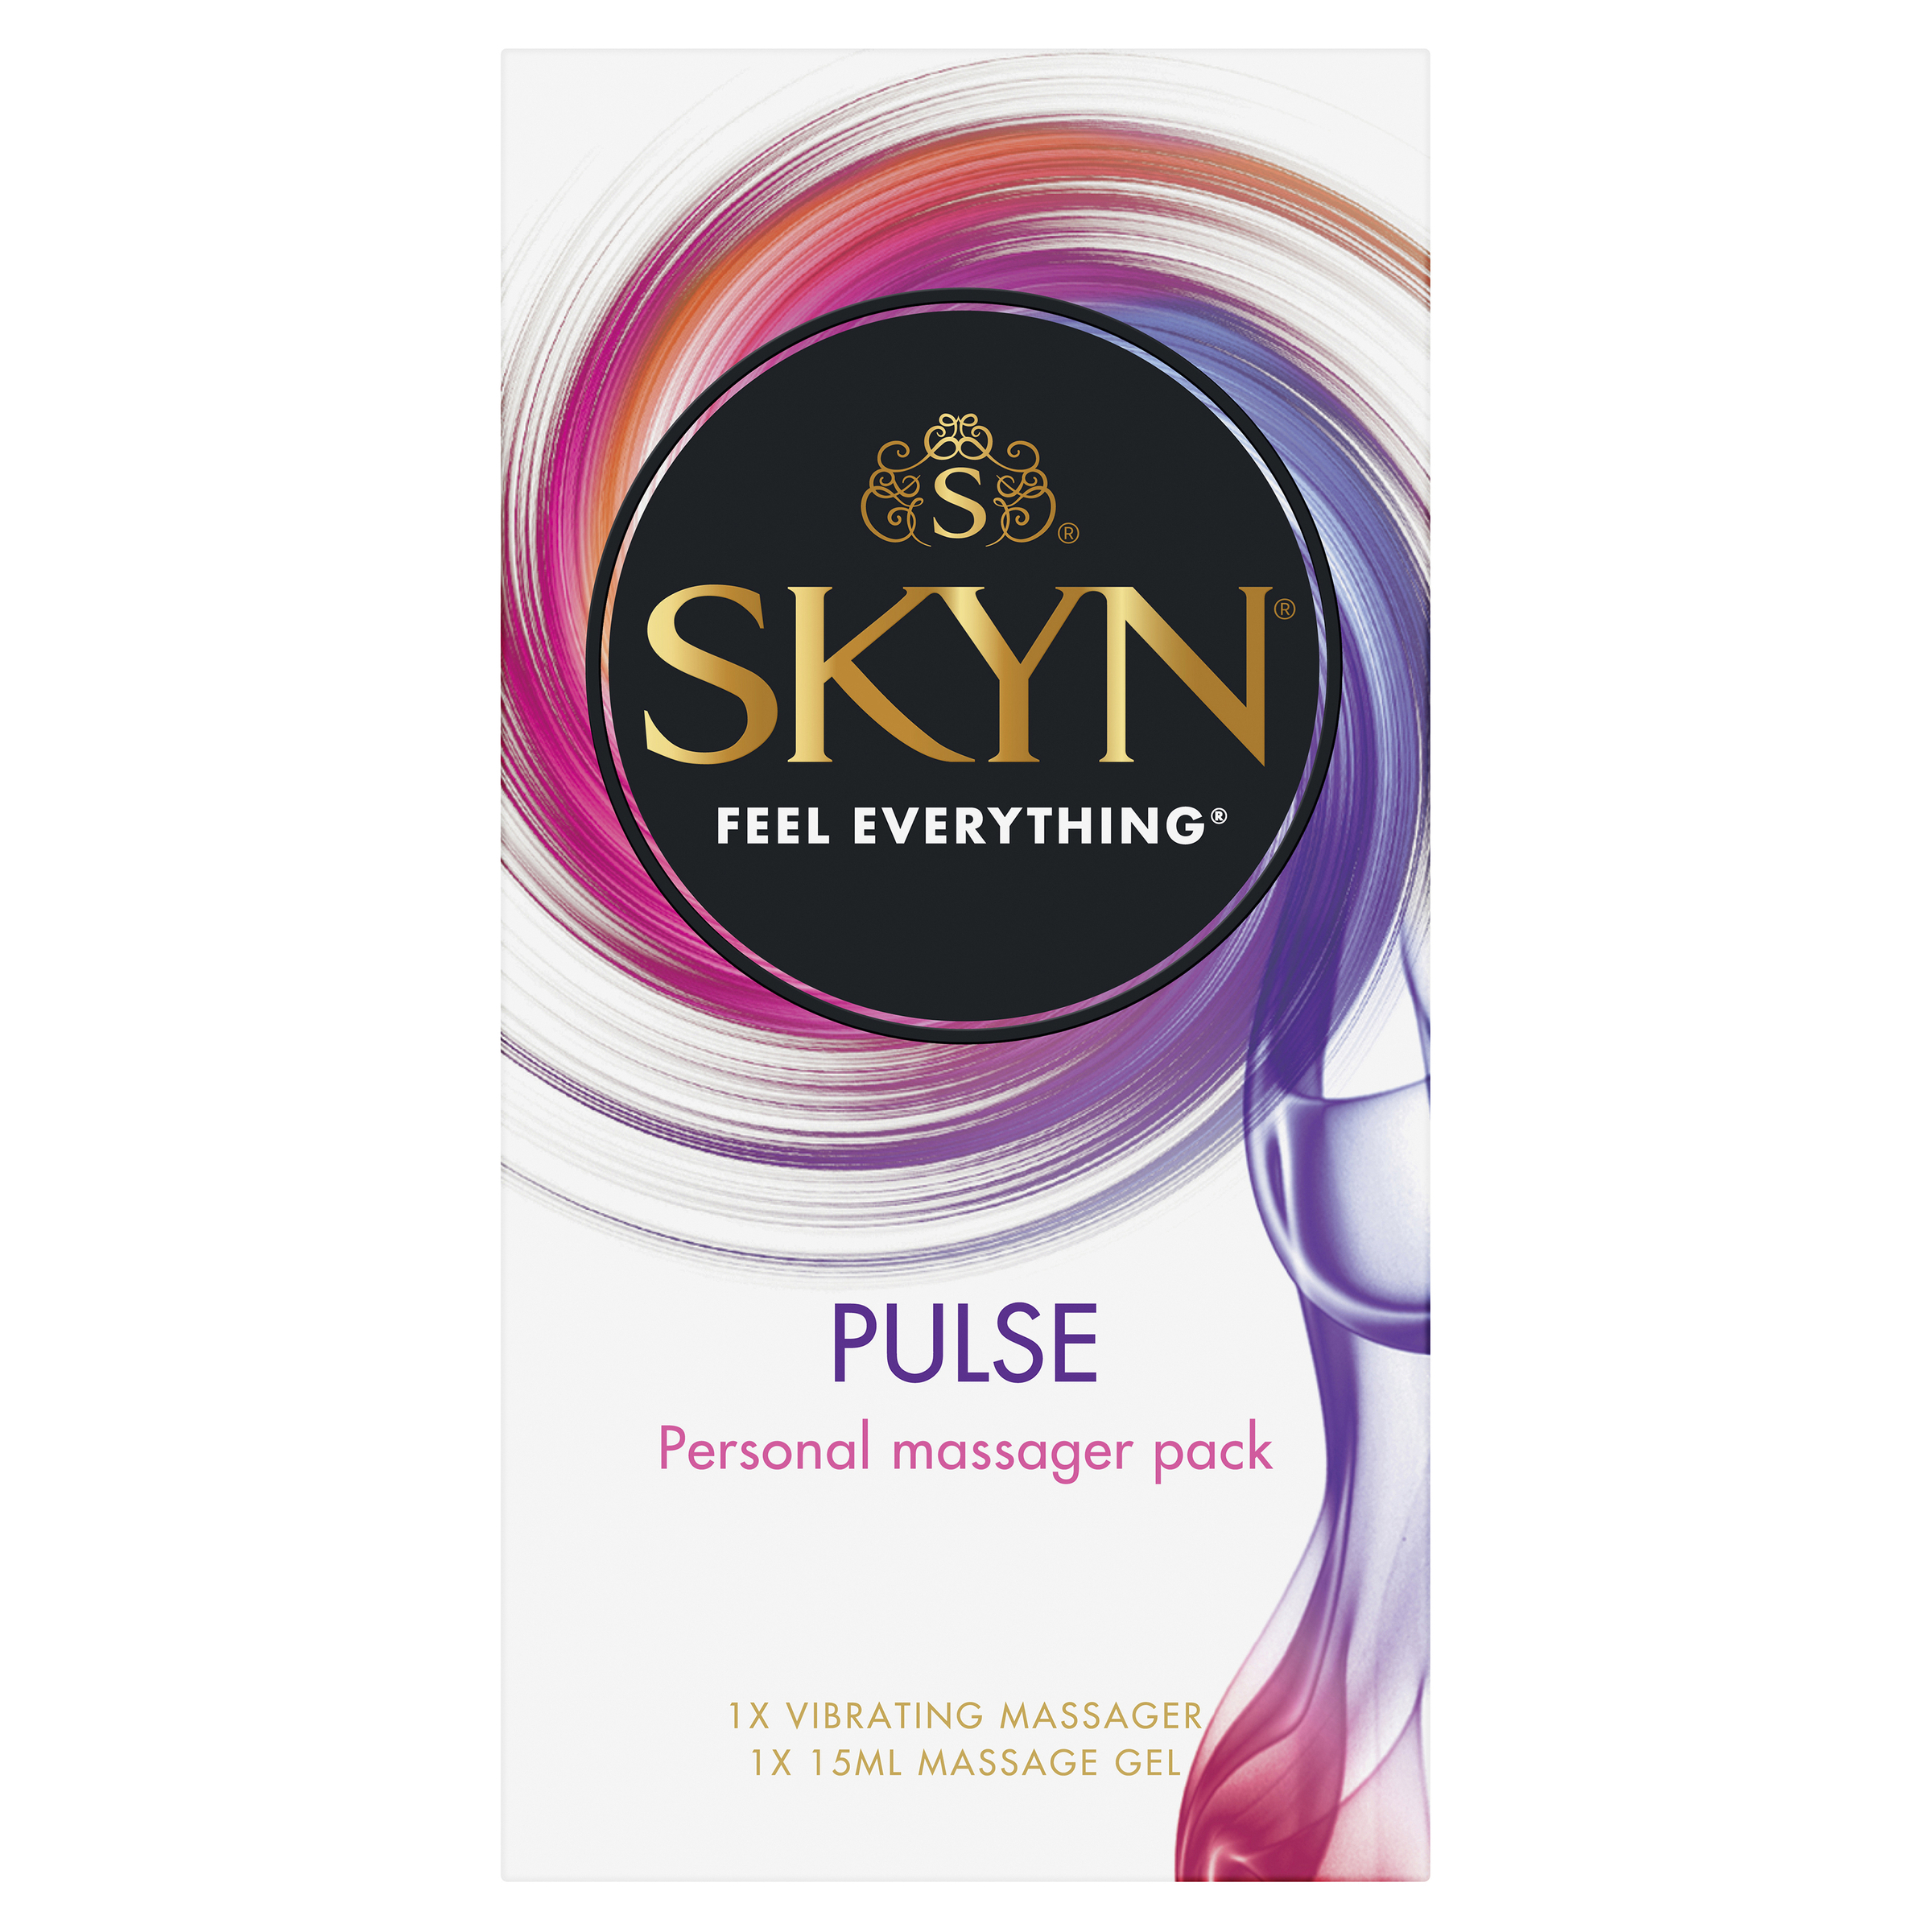 SKYN® Personal Massager Pack - Contains 1 SKYN® Pulse Massager + 15ml SKYN® Sensual Touch Massage Gel